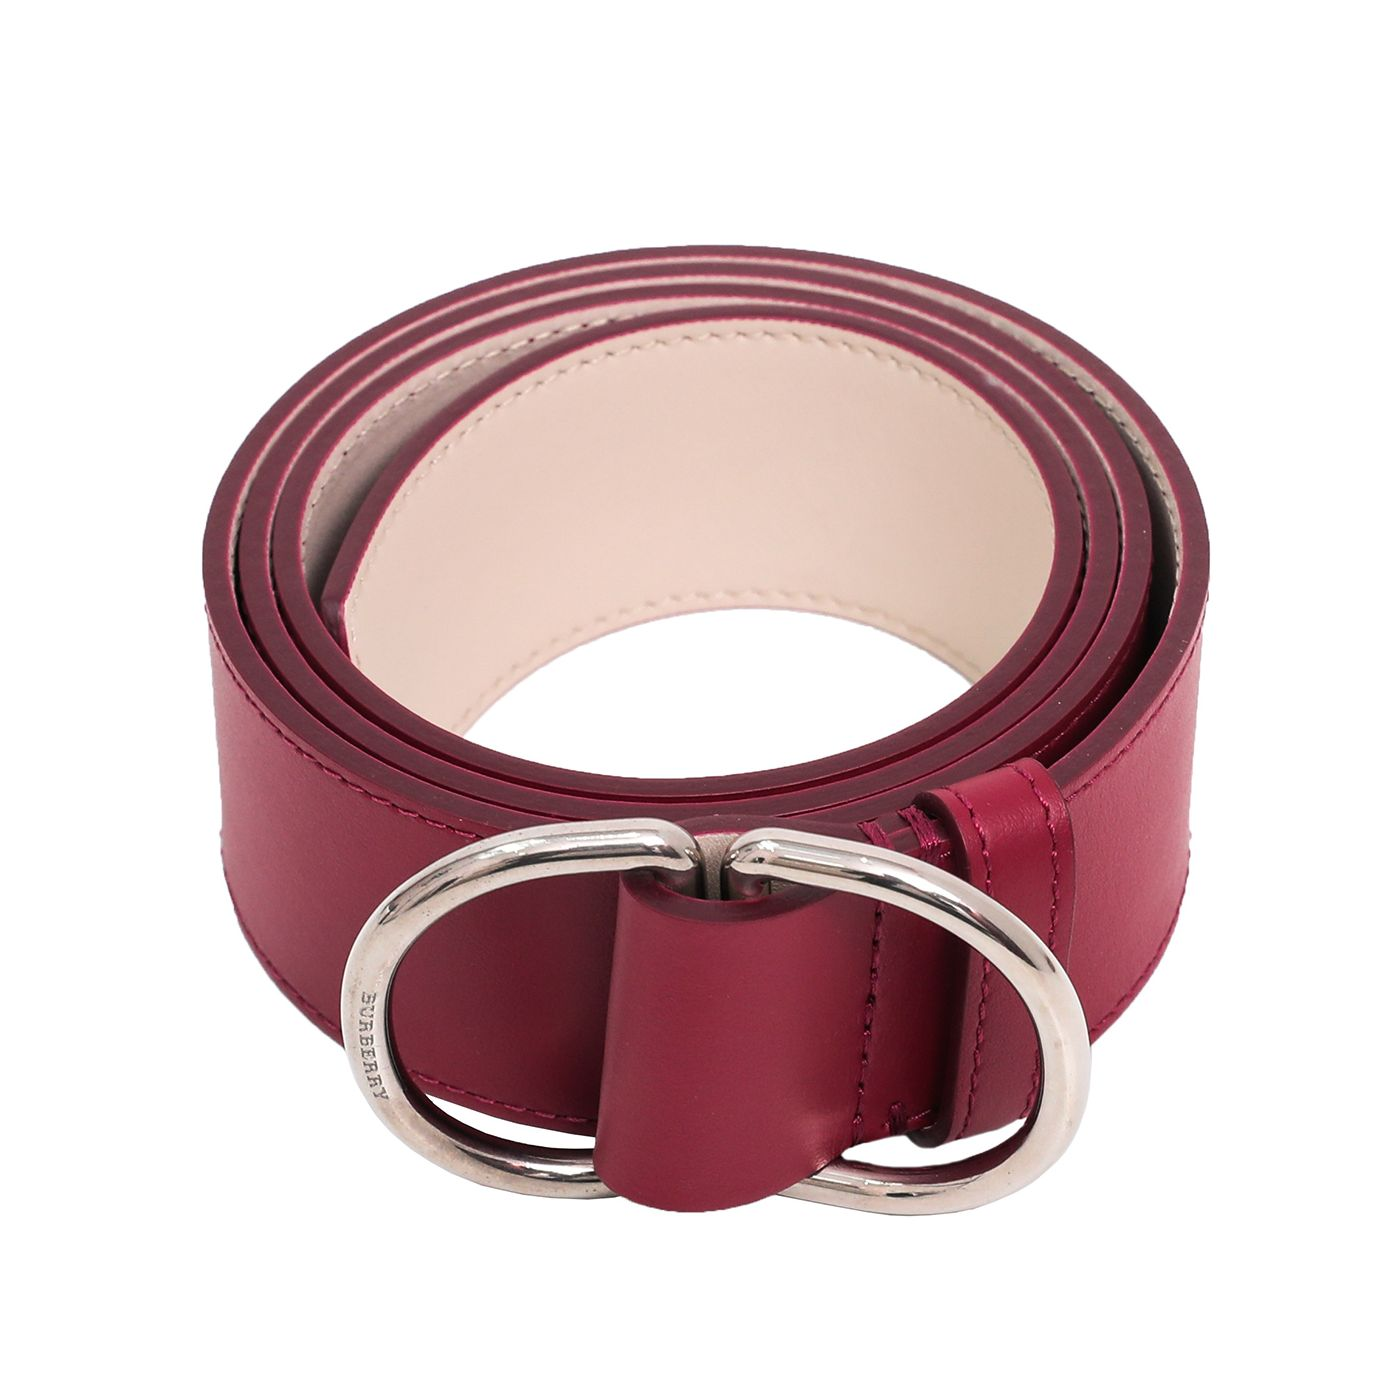 Burberry Bicolor Double D Ring Buckle Belt Medium